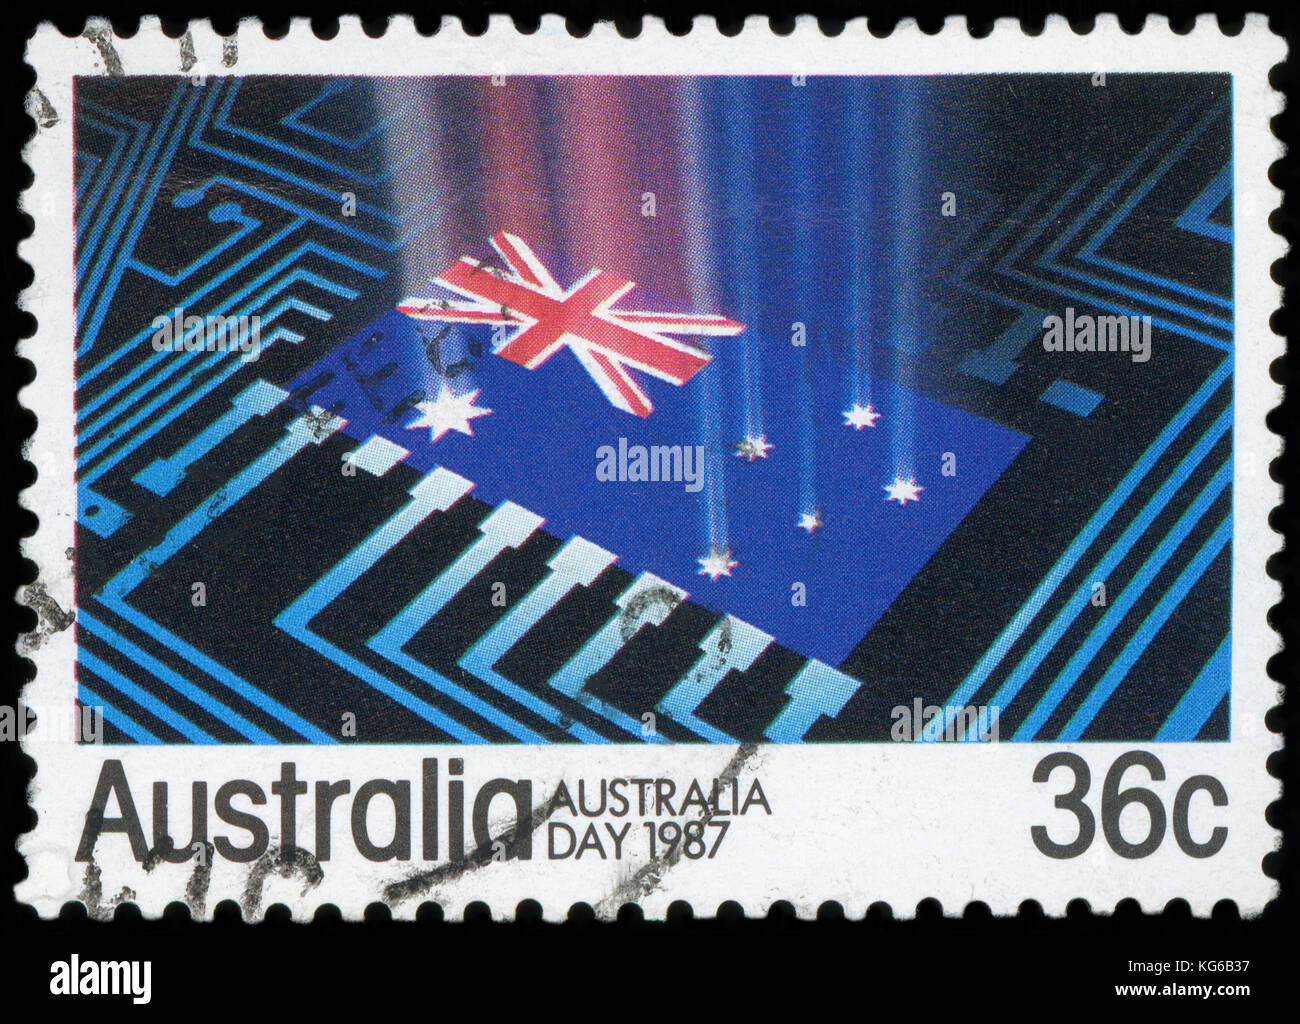 AUSTRALIA - CIRCA 1987:A Cancelled postage stamp from Australia illustrating Australia Day, issued in 1987. - Stock Image